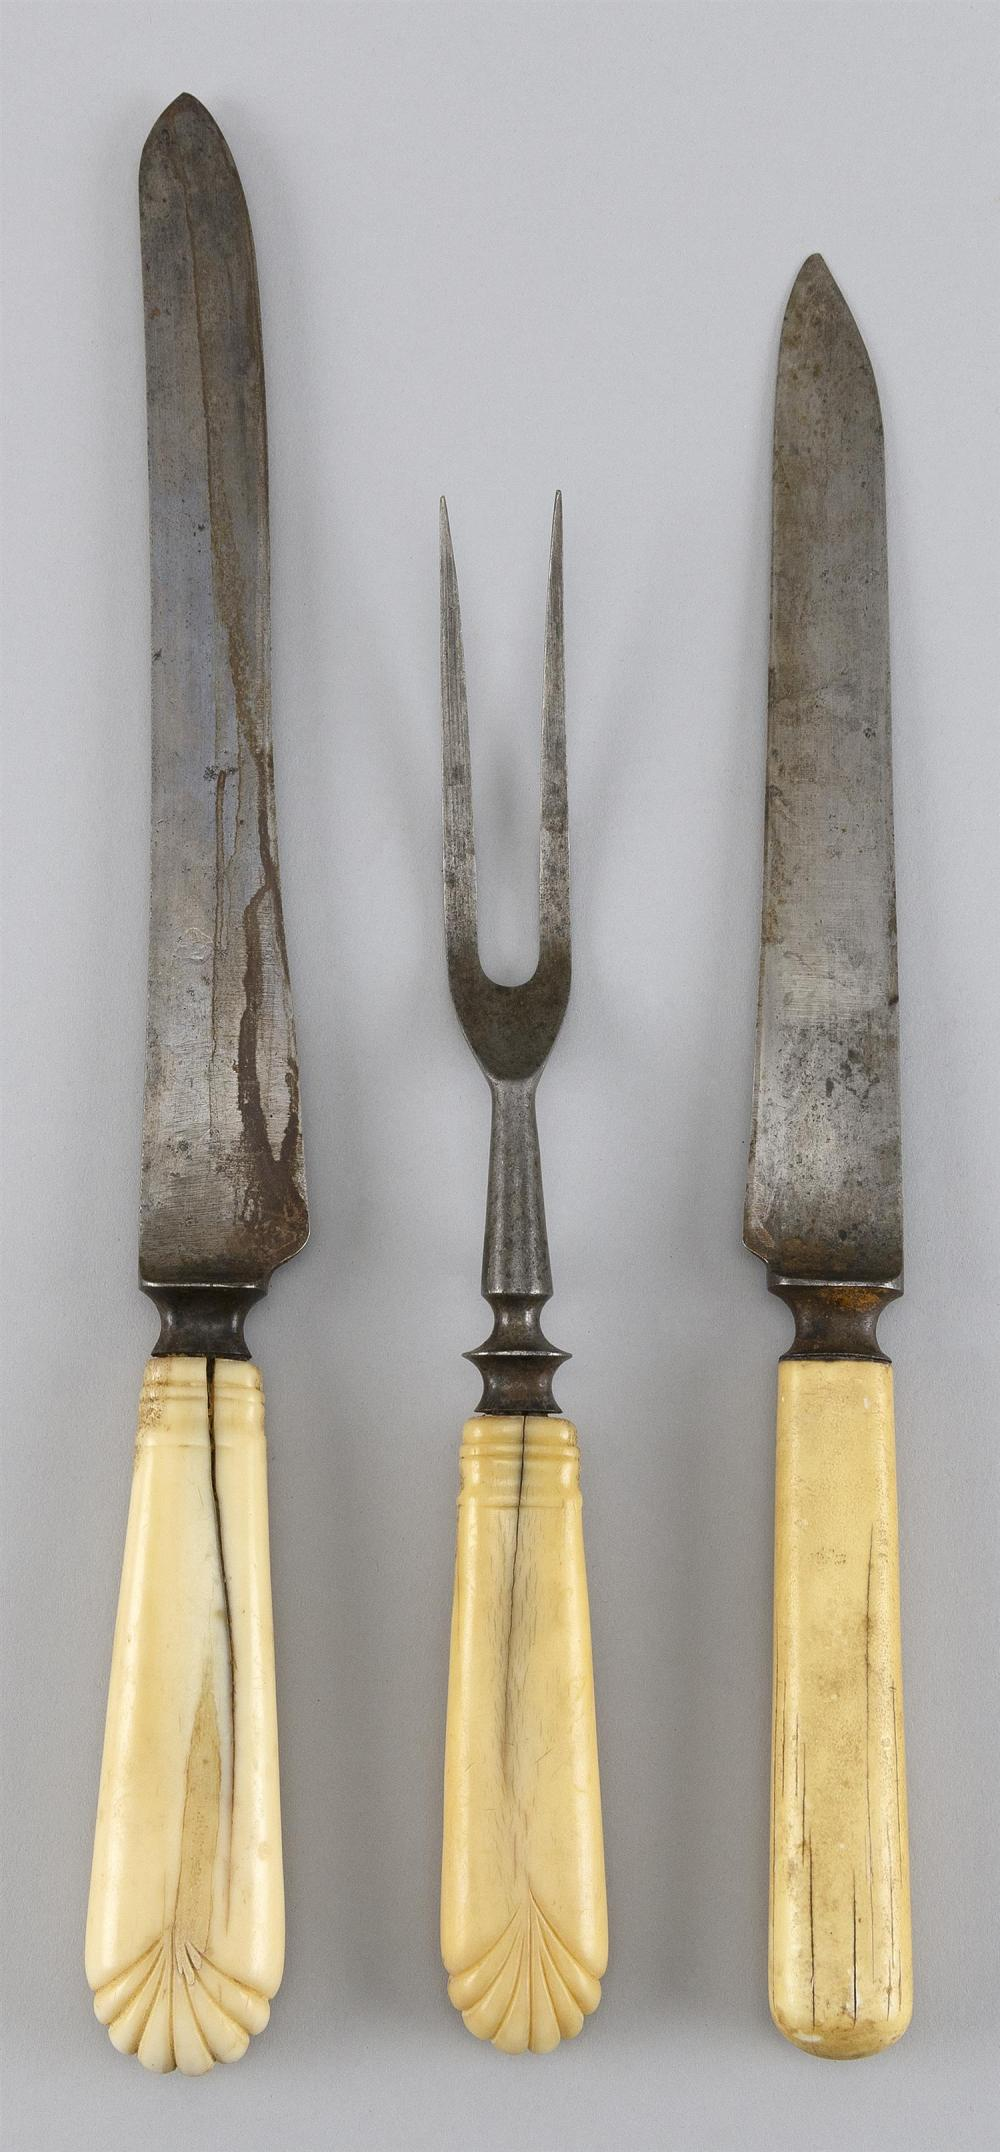 THREE-PIECE CARVING SET WITH BONE AND WALRUS IVORY HANDLES Includes two knives and a two-tine fork. One knife and fork with matching...